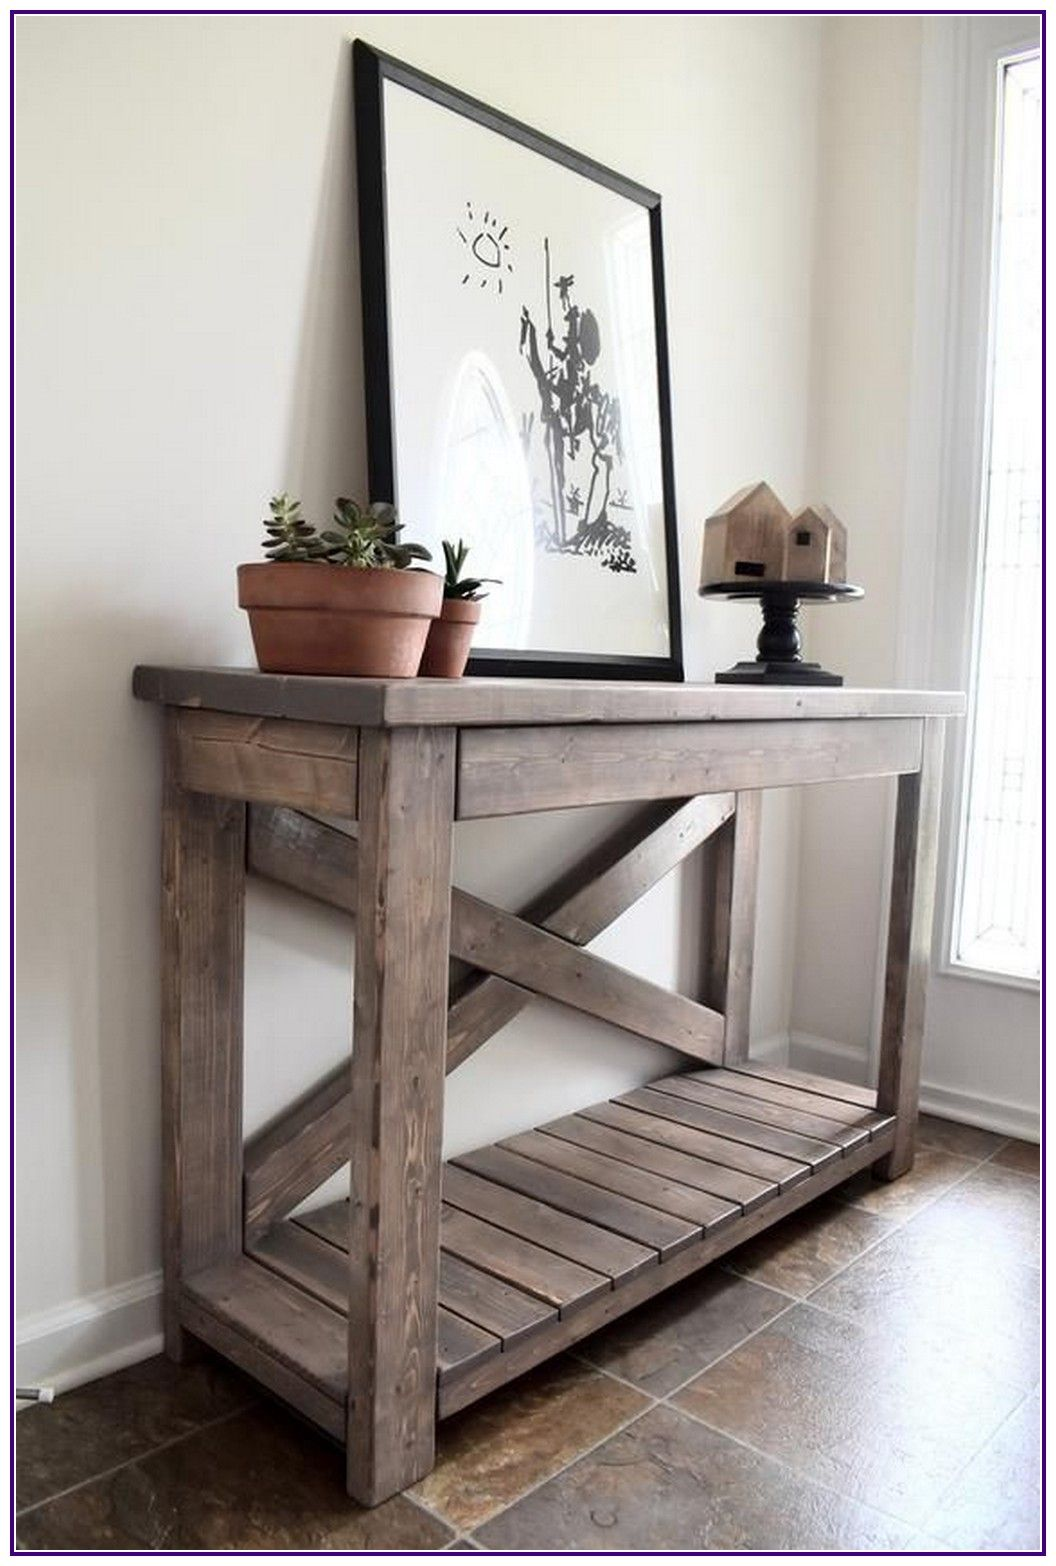 15 Wood Rustic Console Table Modern Farmhouse 00005 In 2020